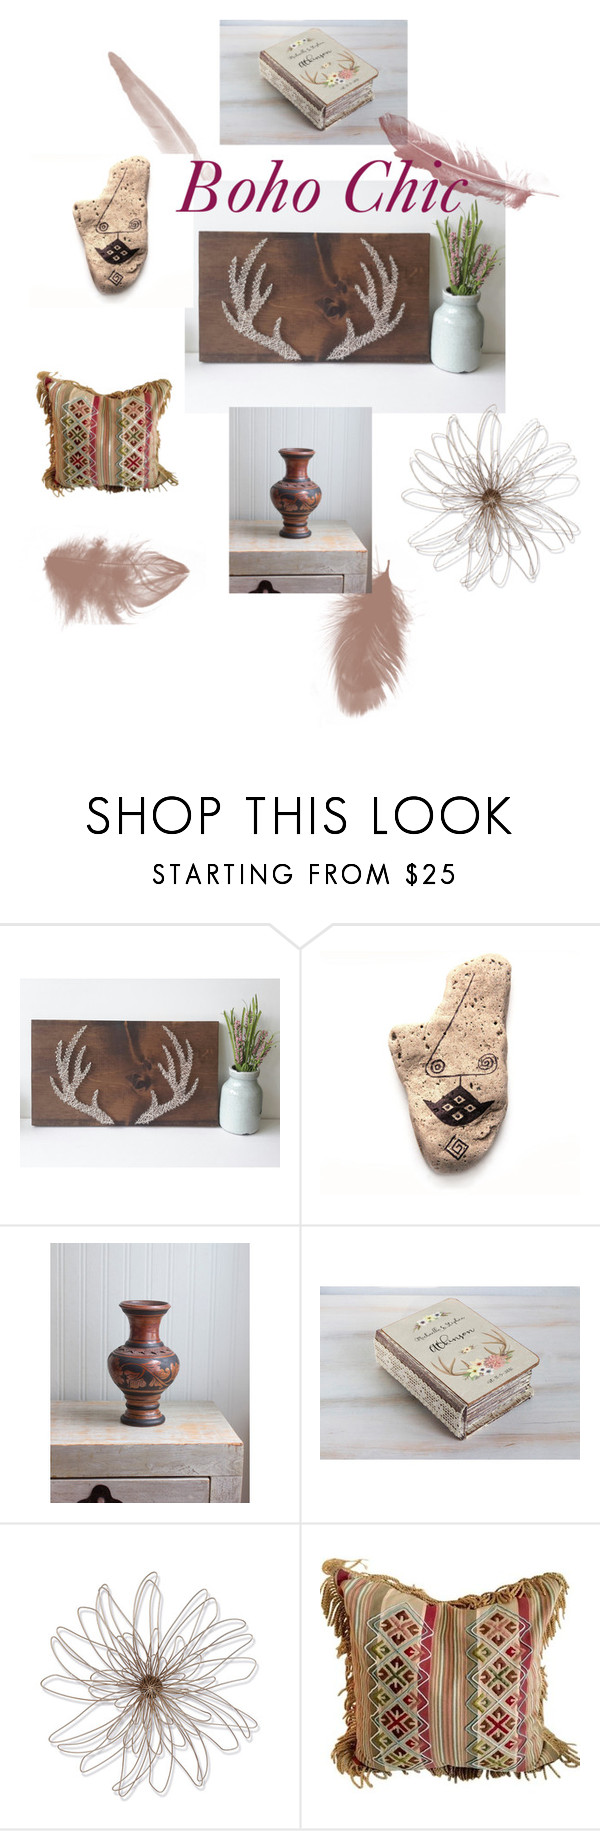 Boho Chic by mollysmuses on Polyvore featuring interior, interiors, interior design, home, home decor, interior decorating, Foreside, vintage, boho and Bohemian